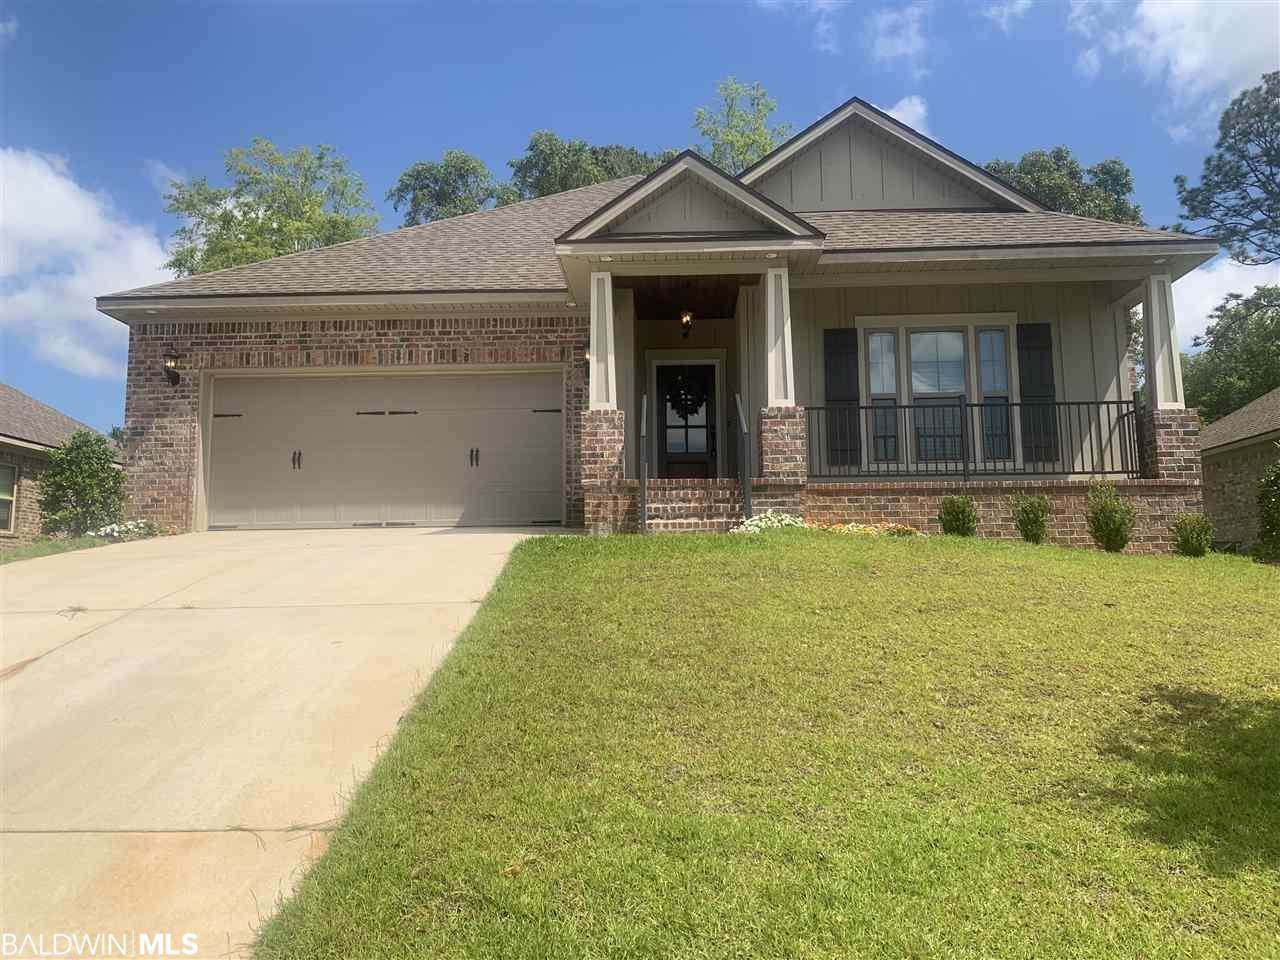 30260 Persimmon Dr - Photo 1